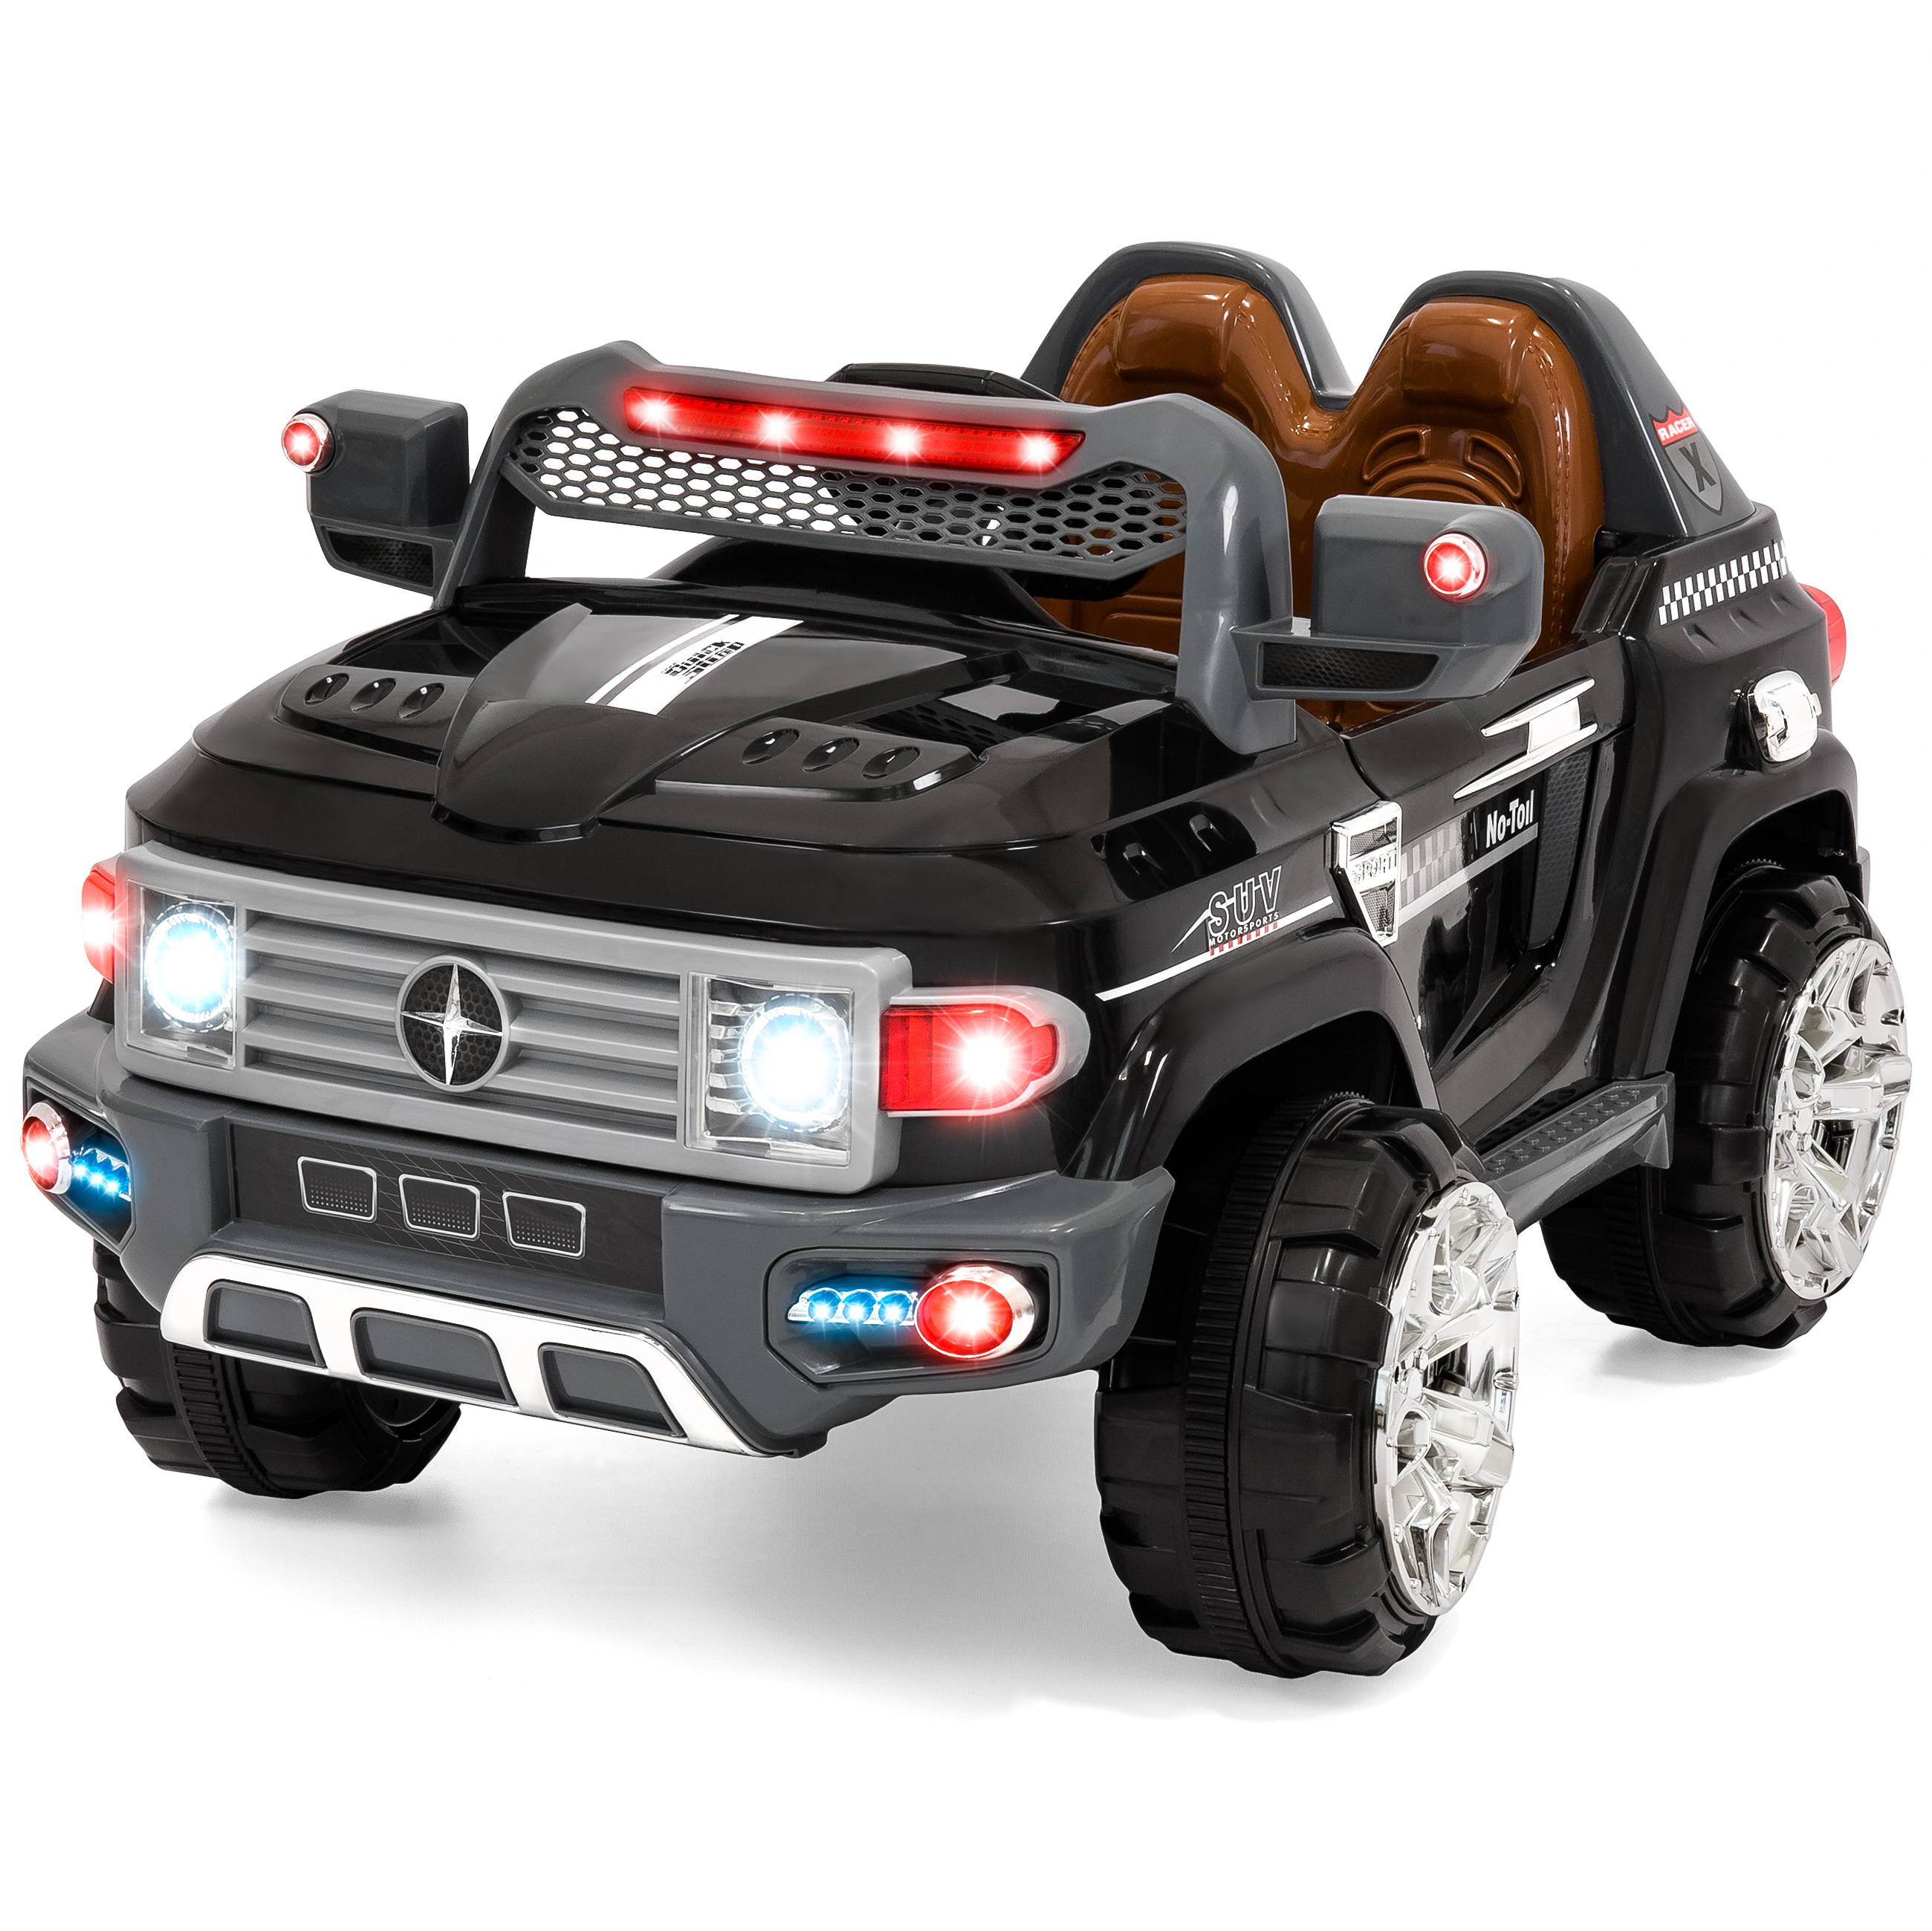 12V MP3 Kids Ride on Truck Car RC Remote Control, LED Lights, AUX and Music by